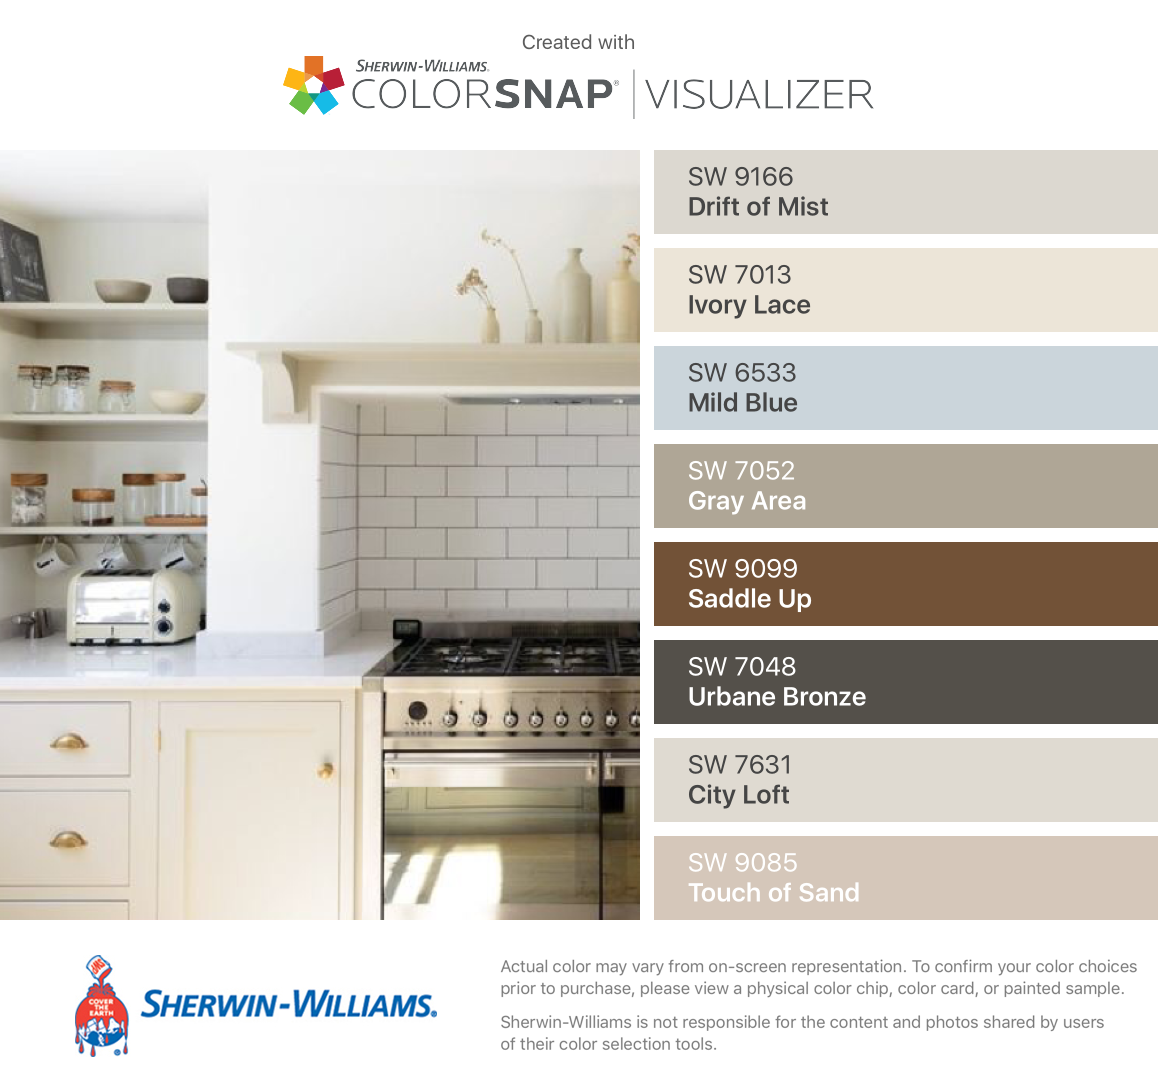 I found these colors with ColorSnap® Visualizer for iPhone by Sherwin-Williams: Drift of Mist (SW 9166), Ivory Lace (SW 7013), Mild Blue (SW 6533), Gray Area (SW 7052), Saddle Up (SW 9099), Urbane Bronze (SW 7048), City Loft (SW 7631), Touch of Sand (SW 9085). #cityloftsherwinwilliams